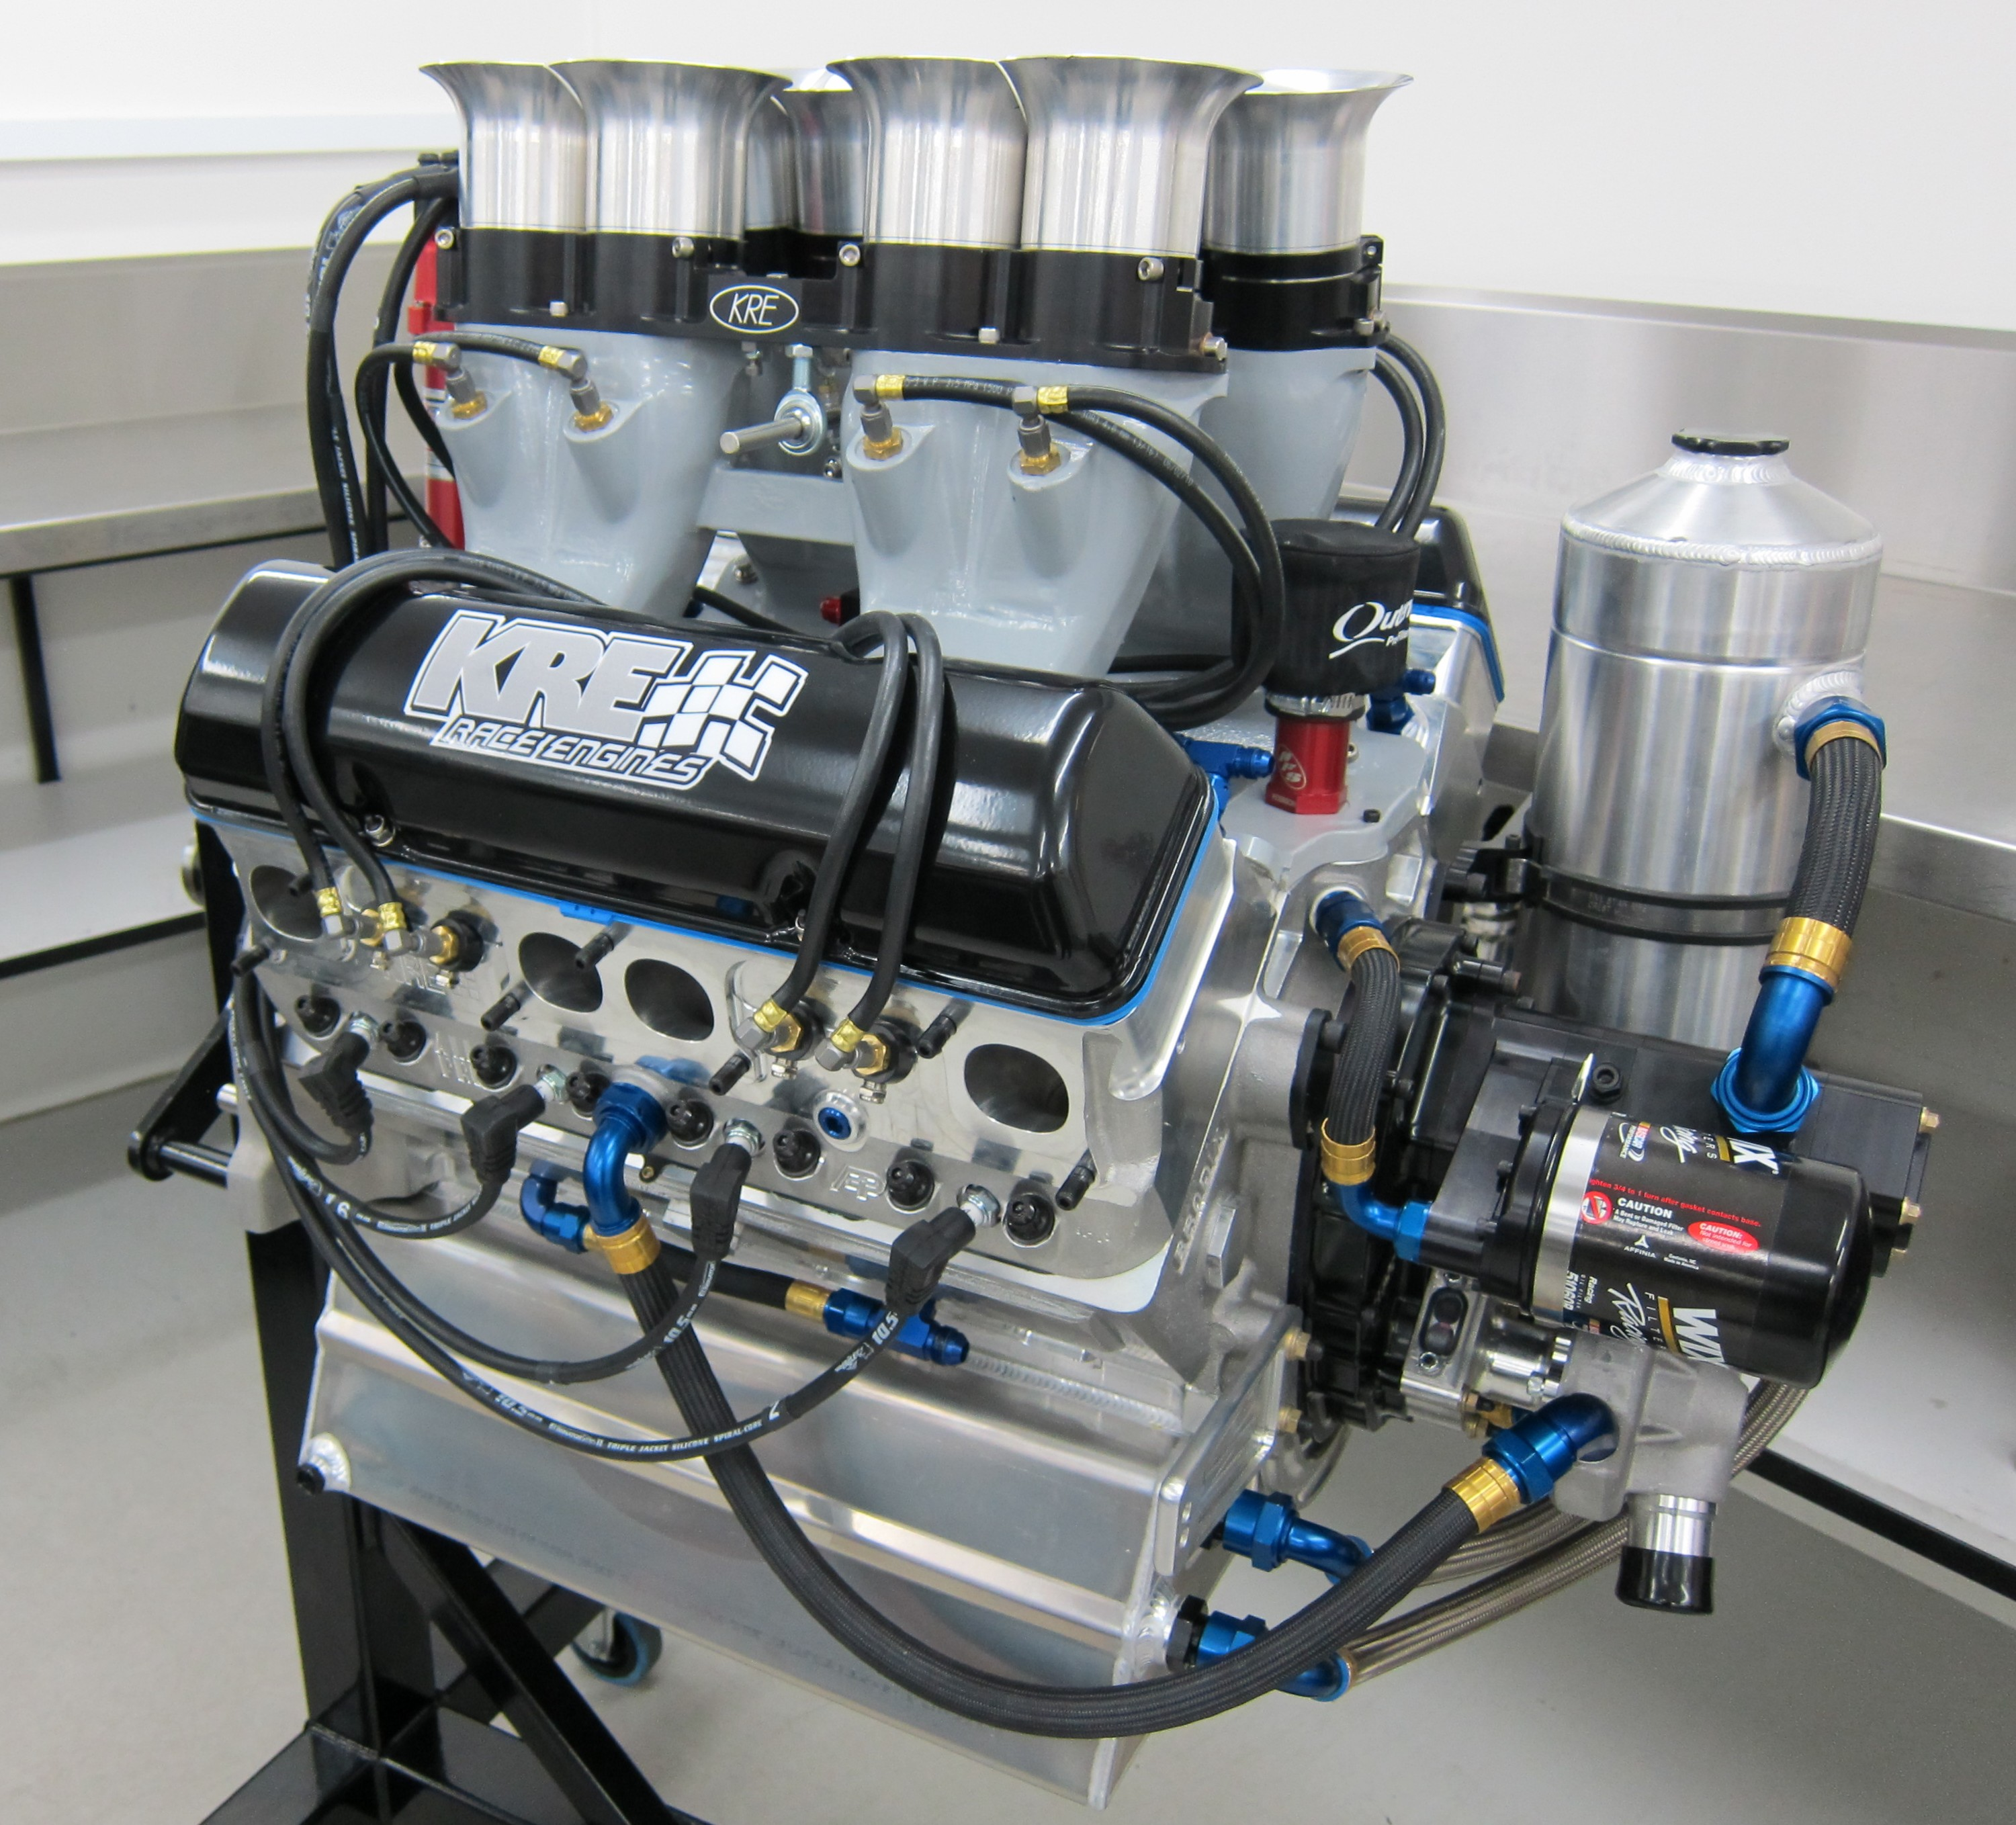 kre engines kre race engines